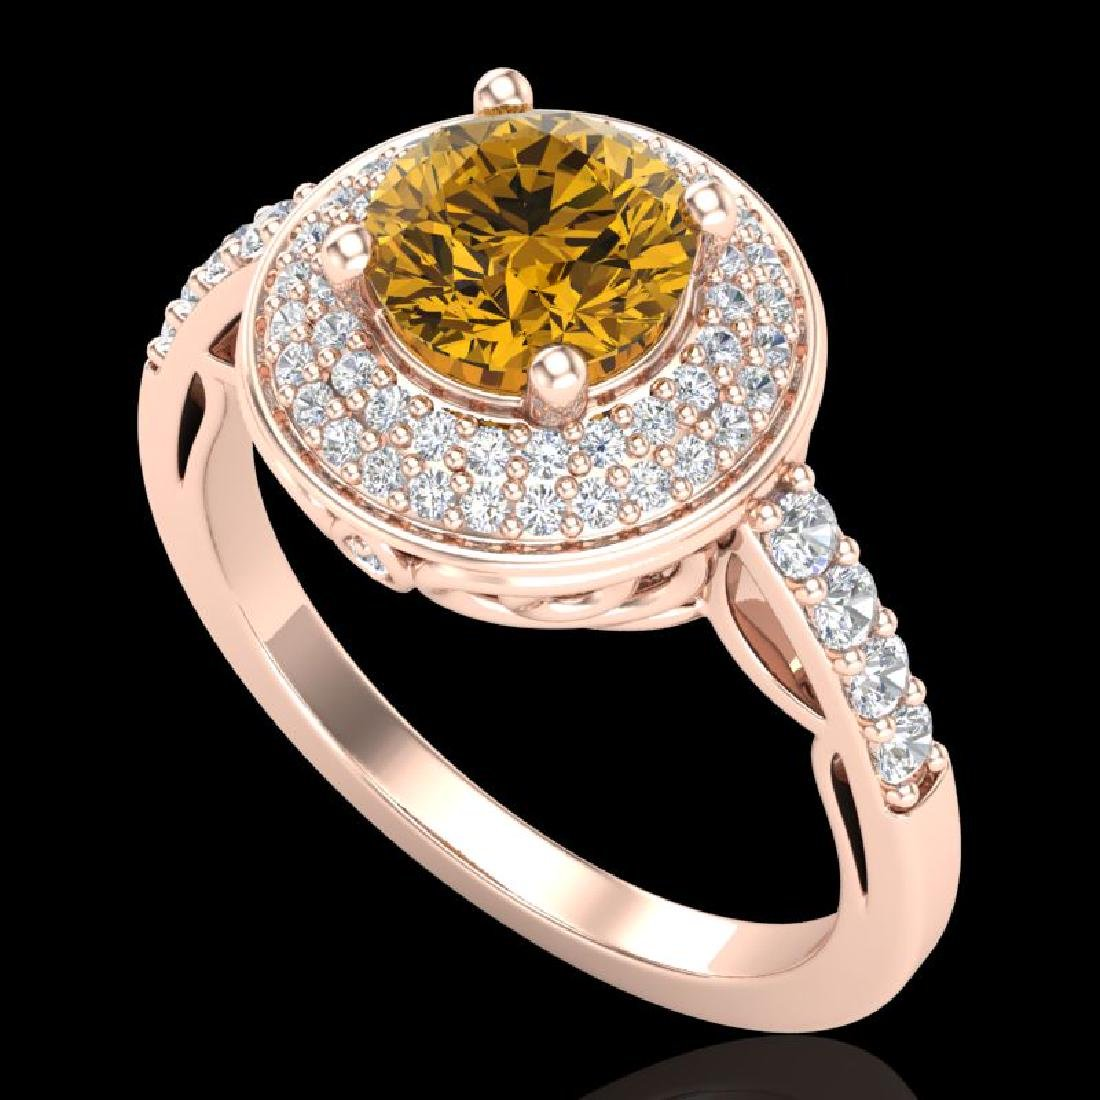 1.7 CTW Intense Fancy Yellow Diamond Engagement Art